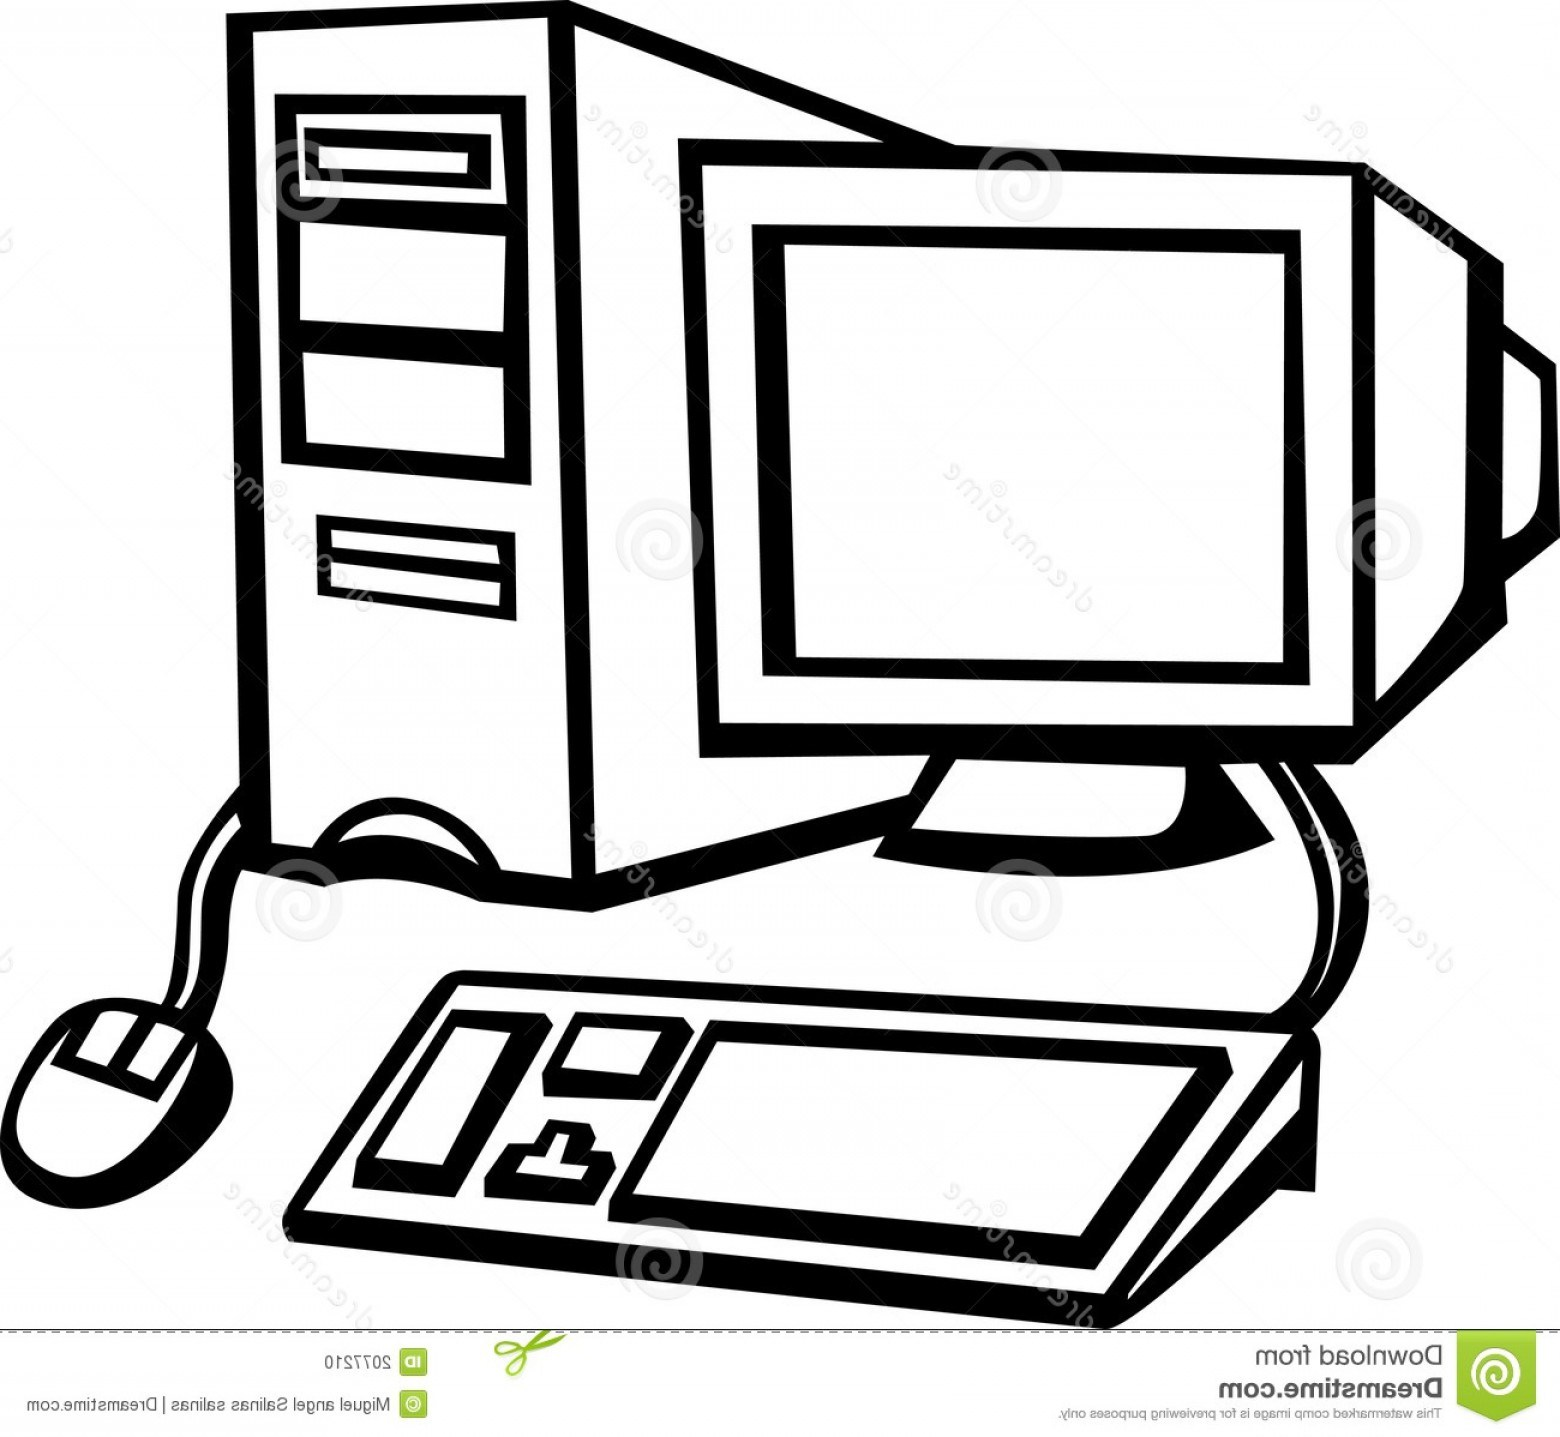 All black clipart computer clipart images gallery for free.